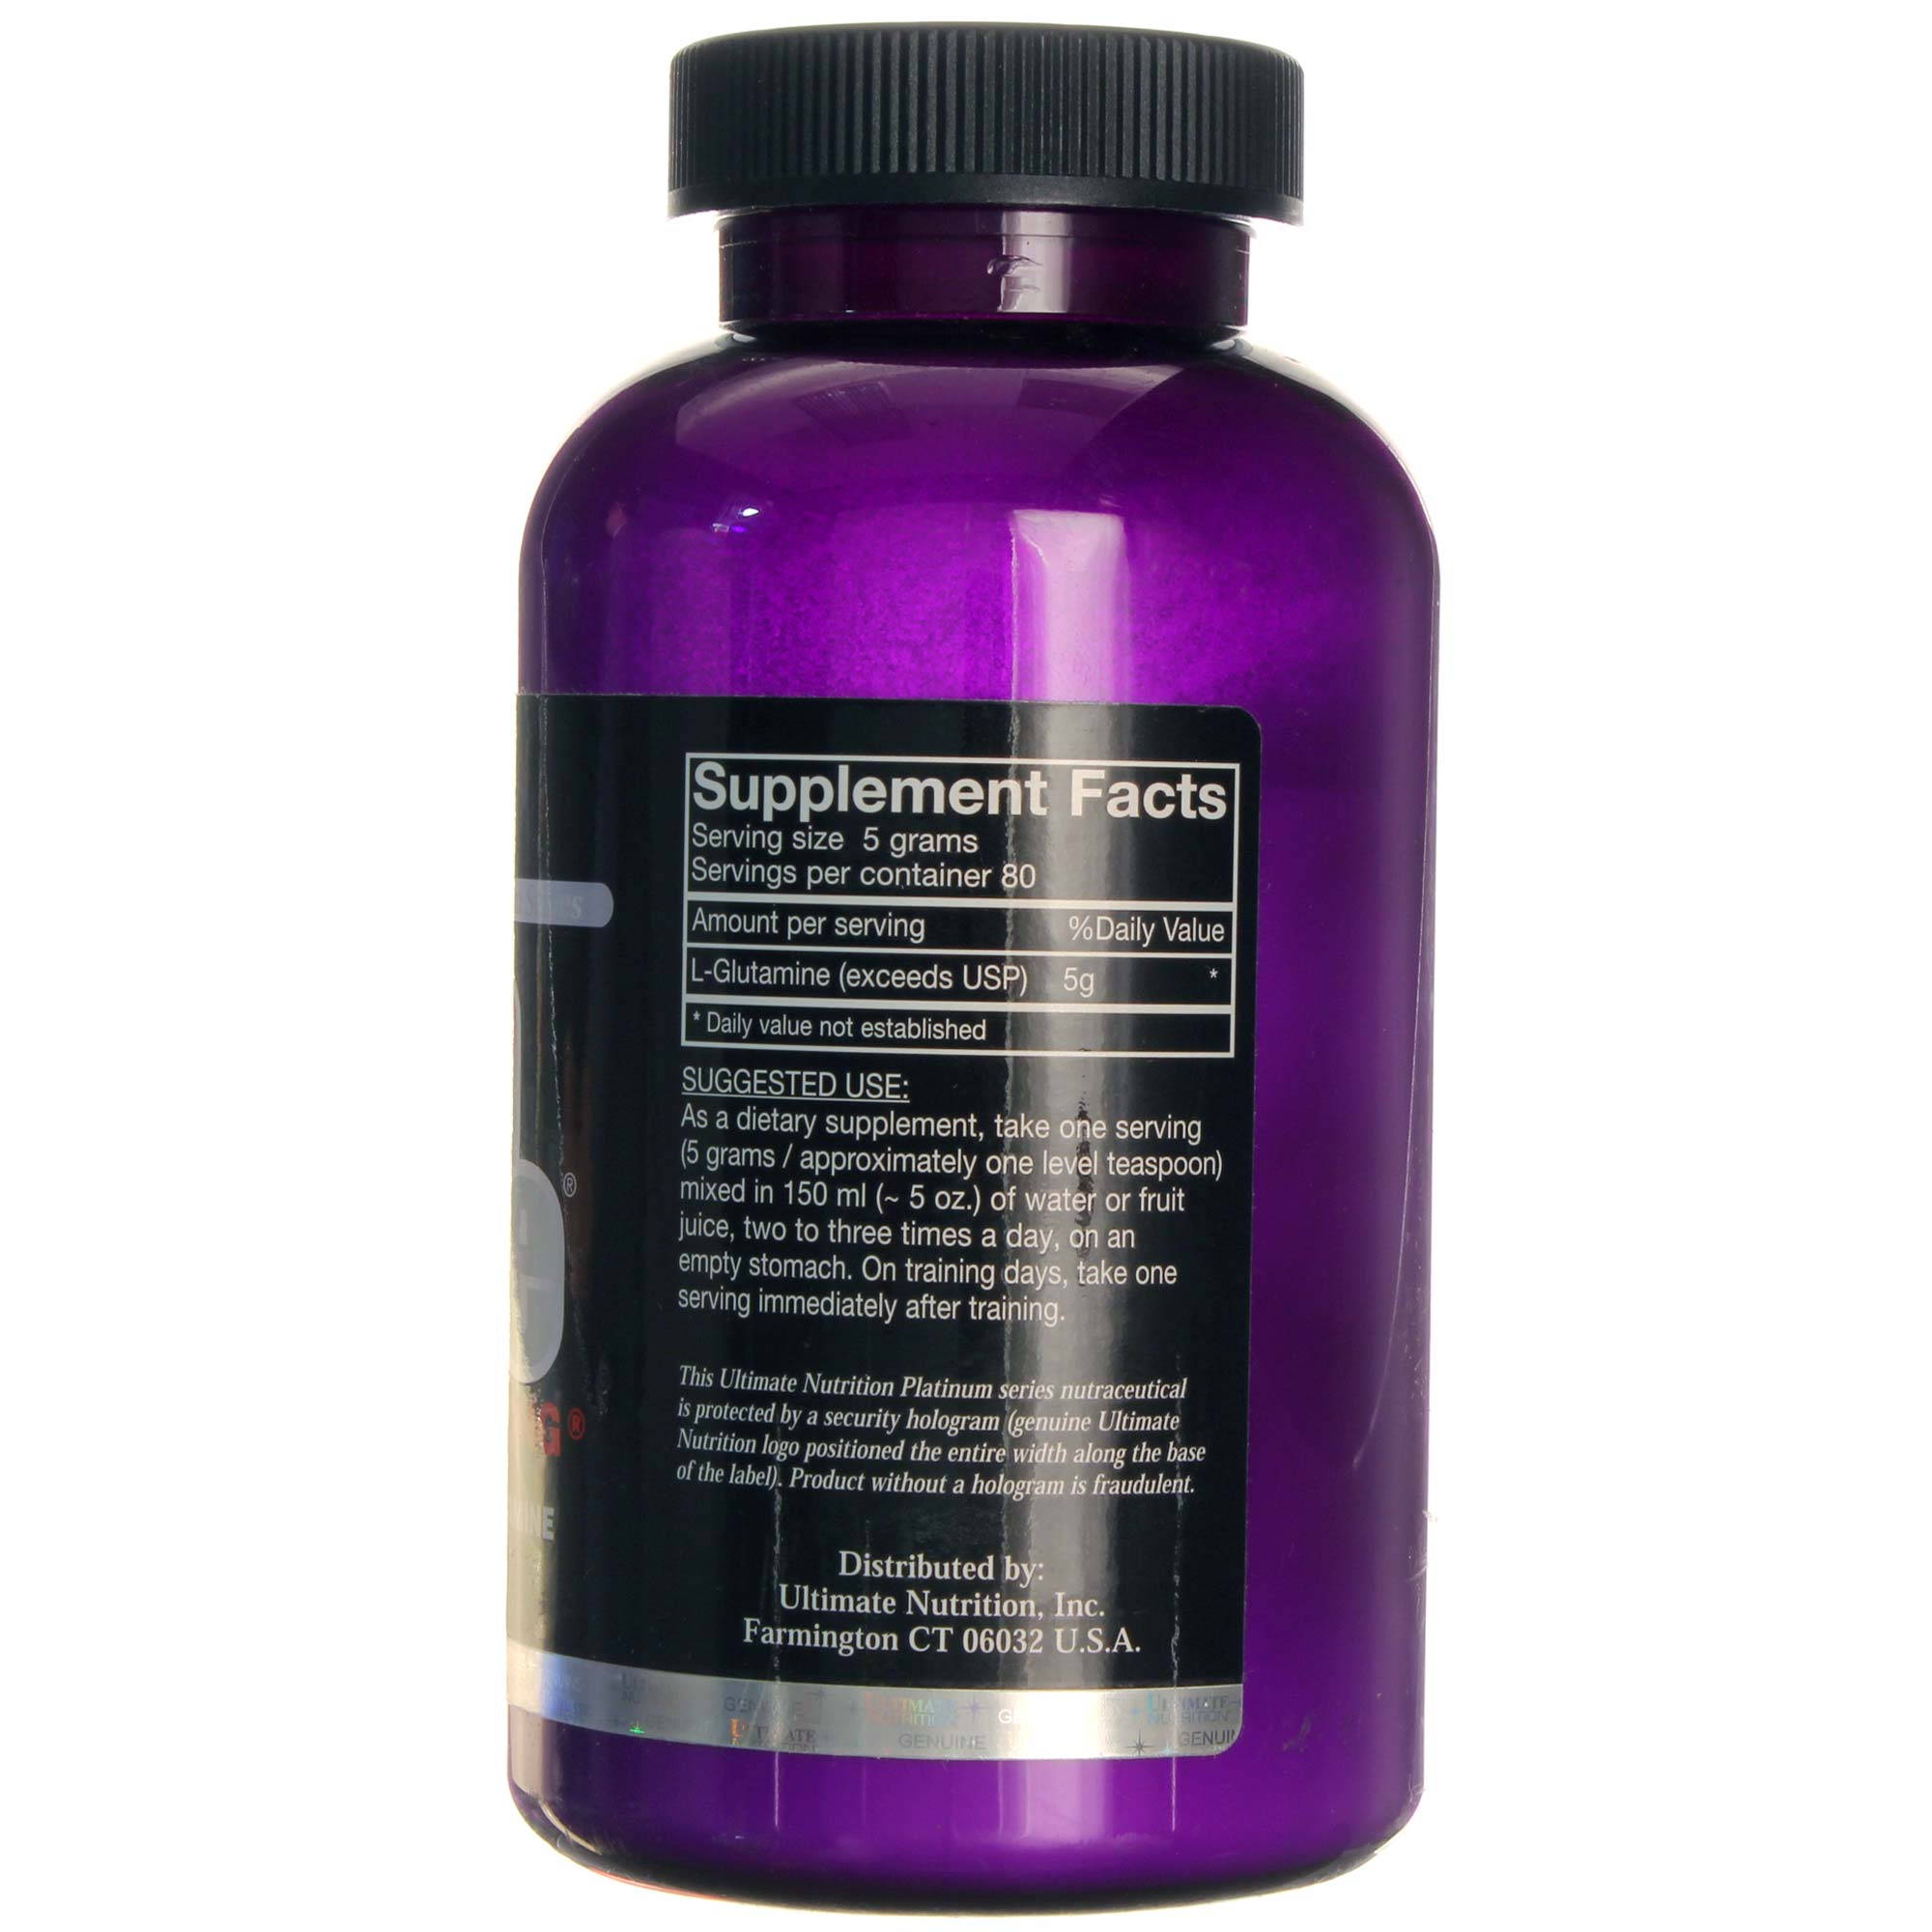 Ultimate Nutrition Glutapure 400 G Evitamins India Bcaa 500mg 120 Caps View Image